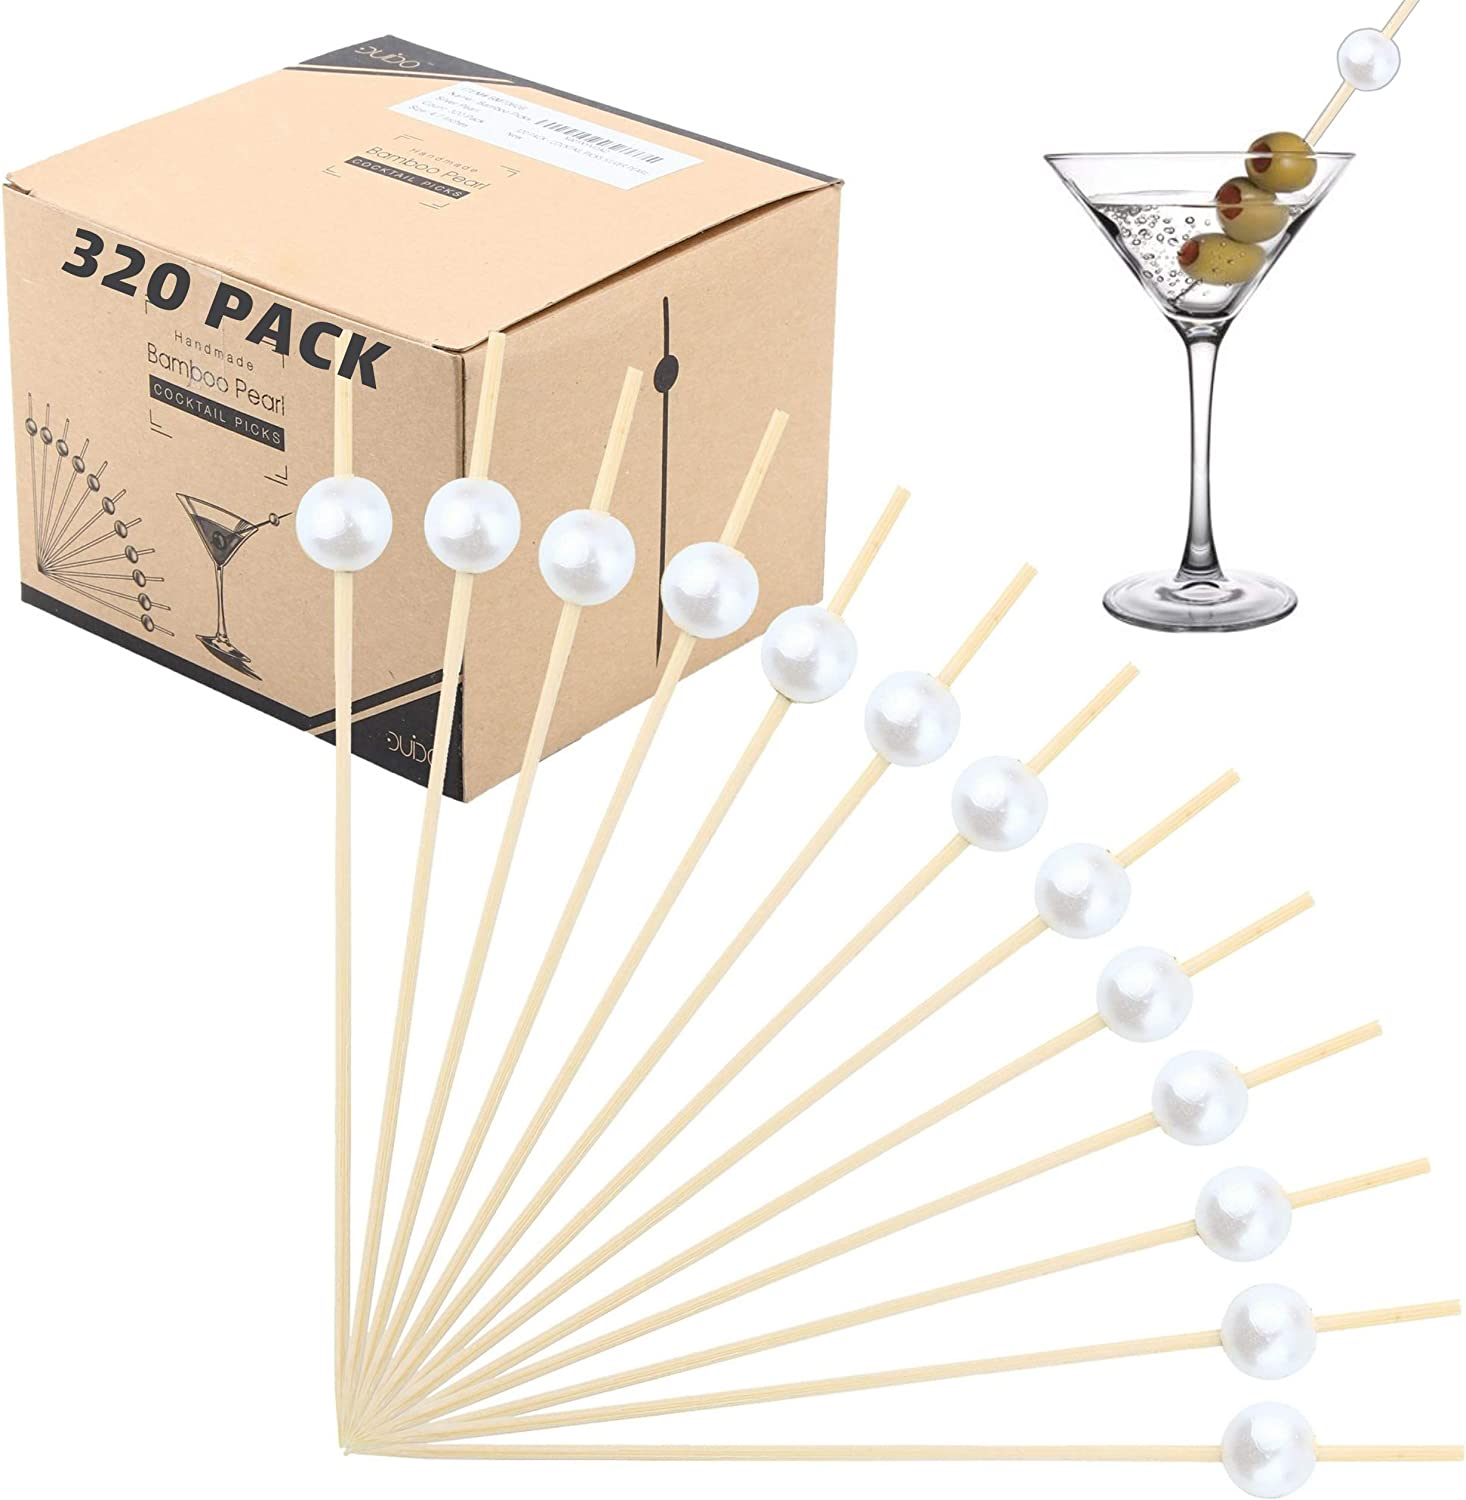 Bamboo Cocktail Picks Skewers Toothpicks - (Pack of 320) 4.75 Inch White Pearl Wooden Frill Tooth Picks for Appetizer Martini Food Garnish Cocktail Sandwich Fruit Kabobs – Catering Weddings Decorative